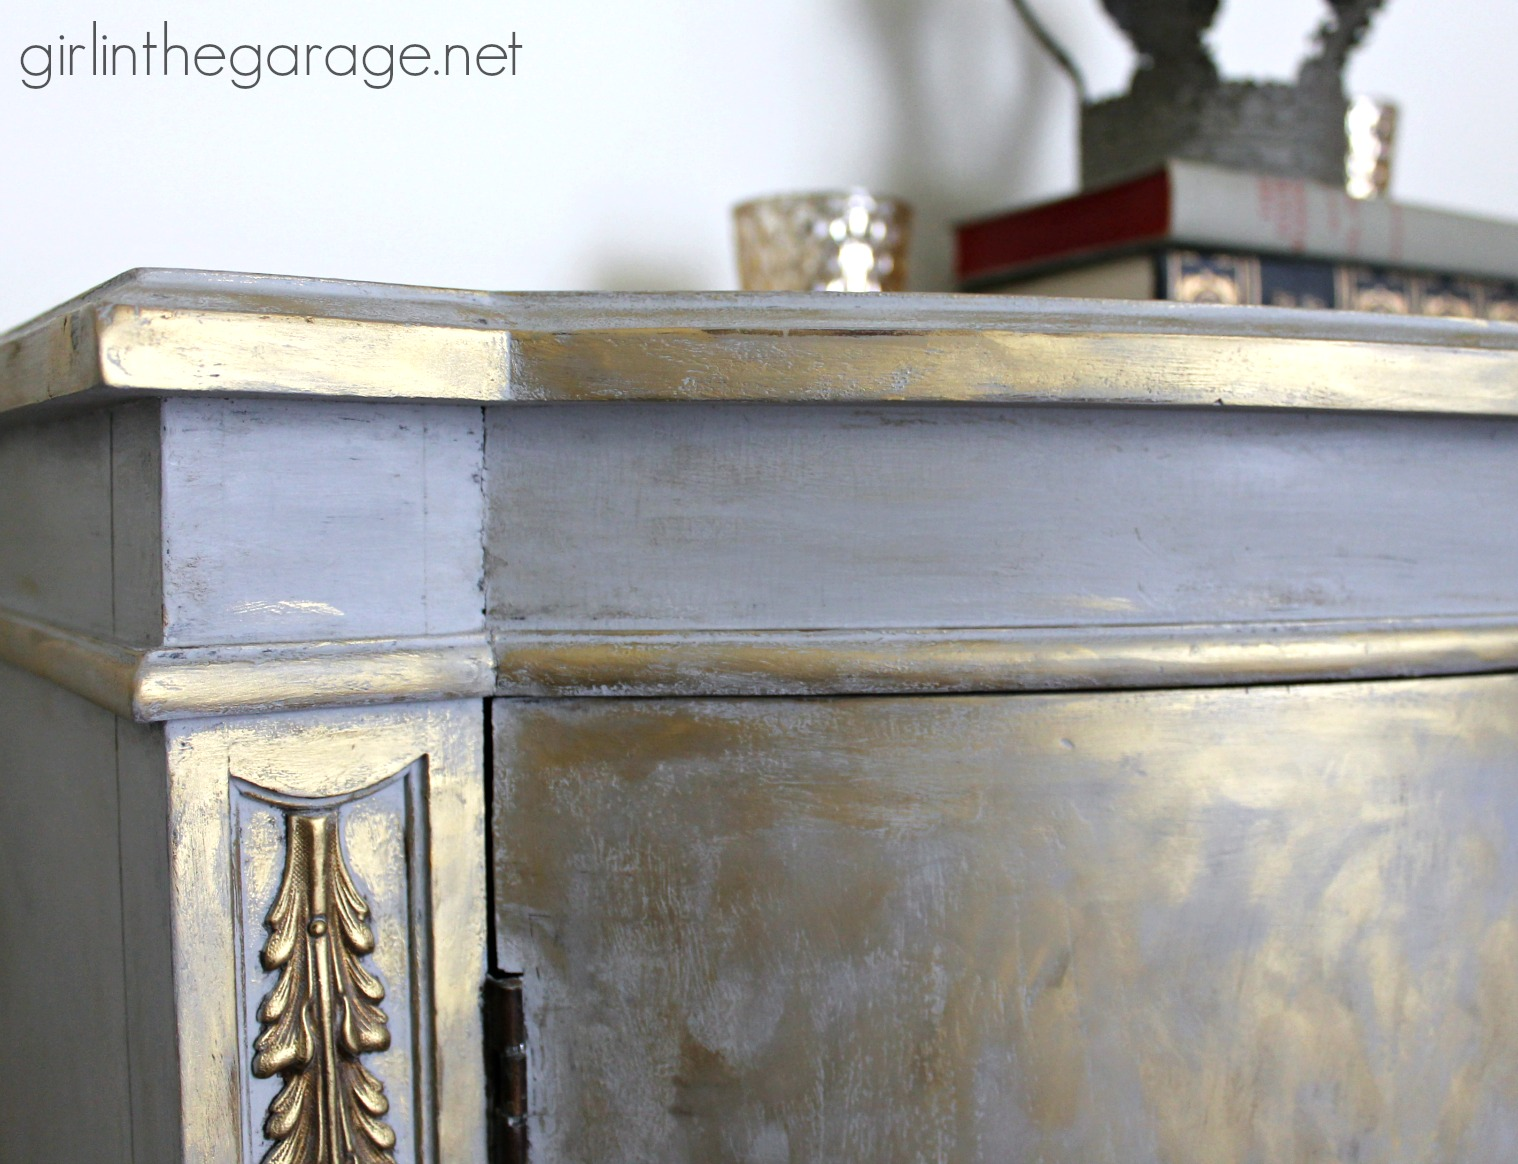 painted furniture makeover gold metallic. Gold And Gray Cabinet {Metallic Themed Furniture Makeover} - Girlinthegarage.net Painted Makeover Metallic